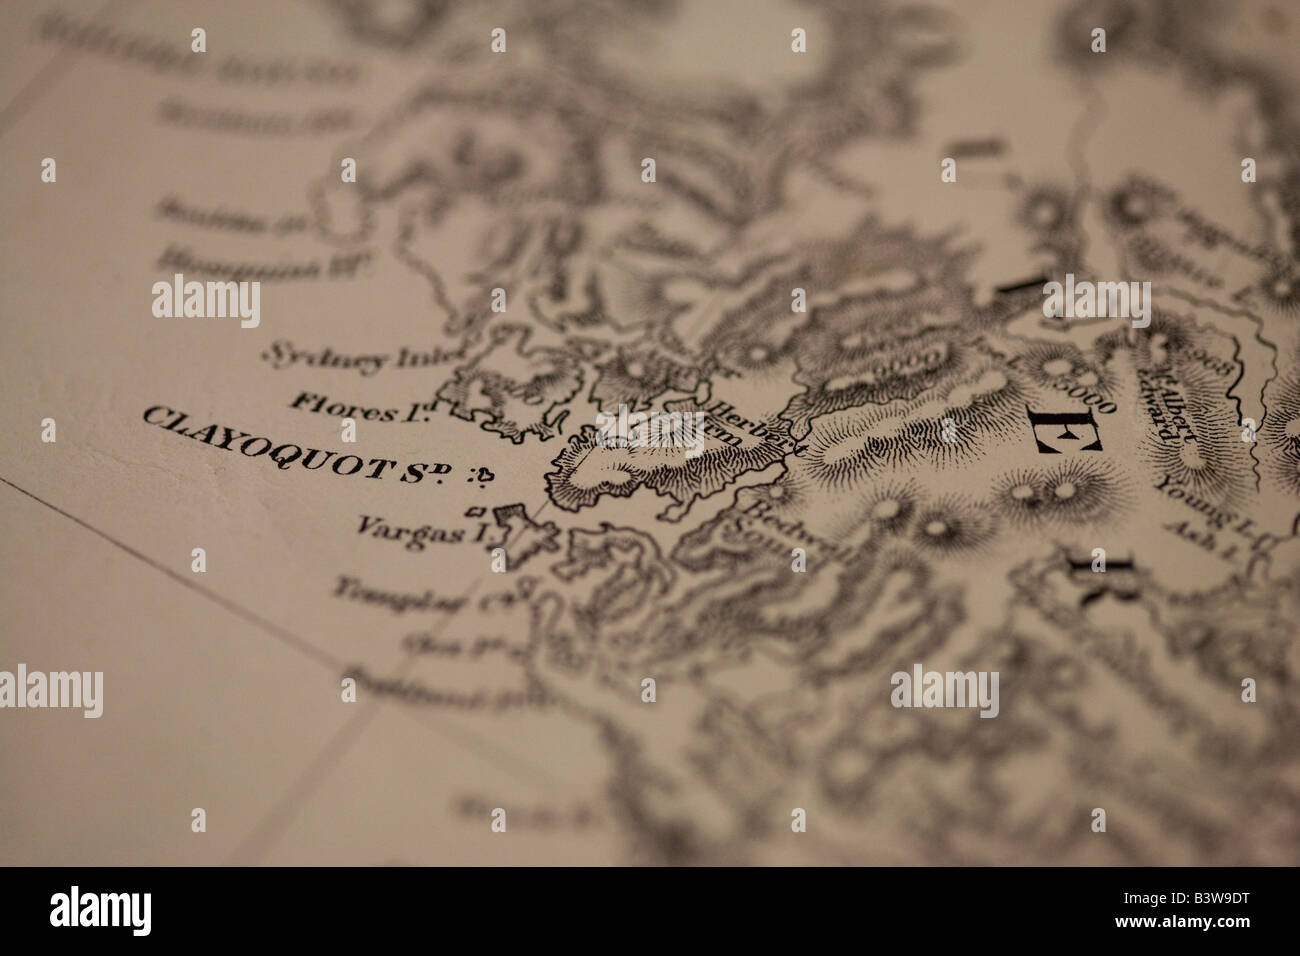 Vintage map, Clayoquot Sound, British Columbia, Canada - Stock Image